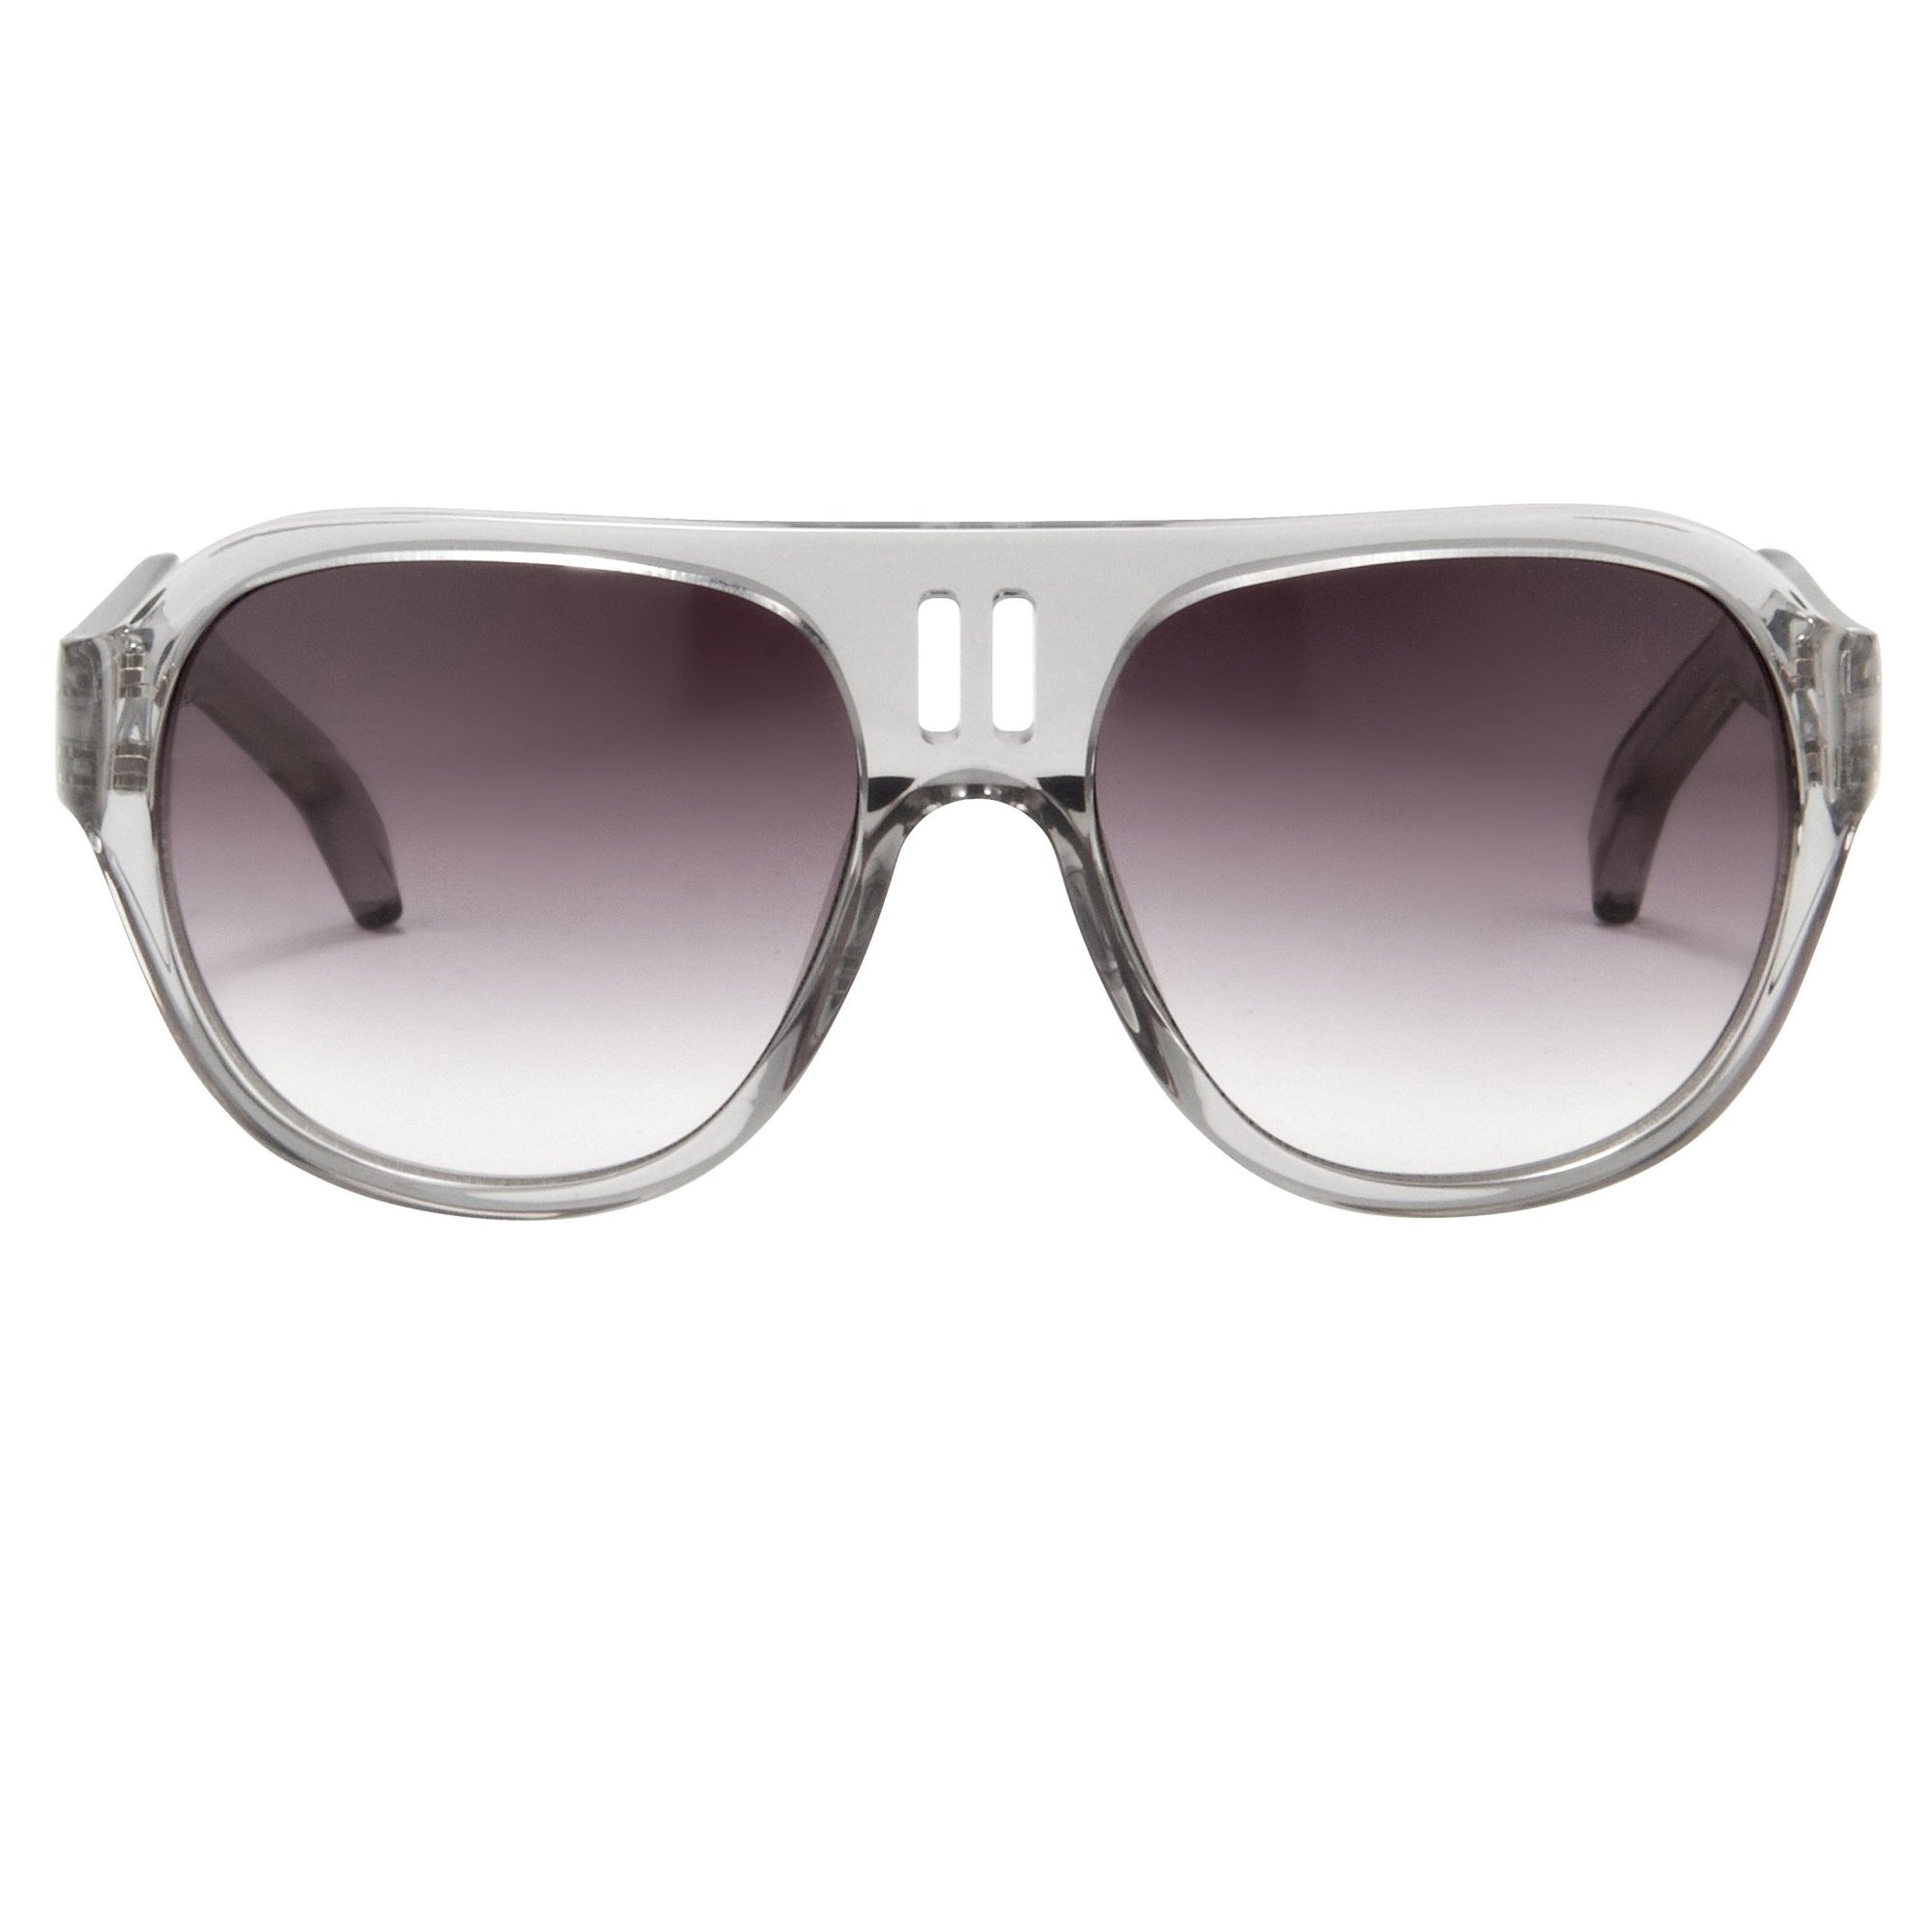 Boris Bidjan Saberi Sunglasses Translucent Smoke With Purple Graduated Category 3 Lenses BBS4C5SUN - Watches & Crystals